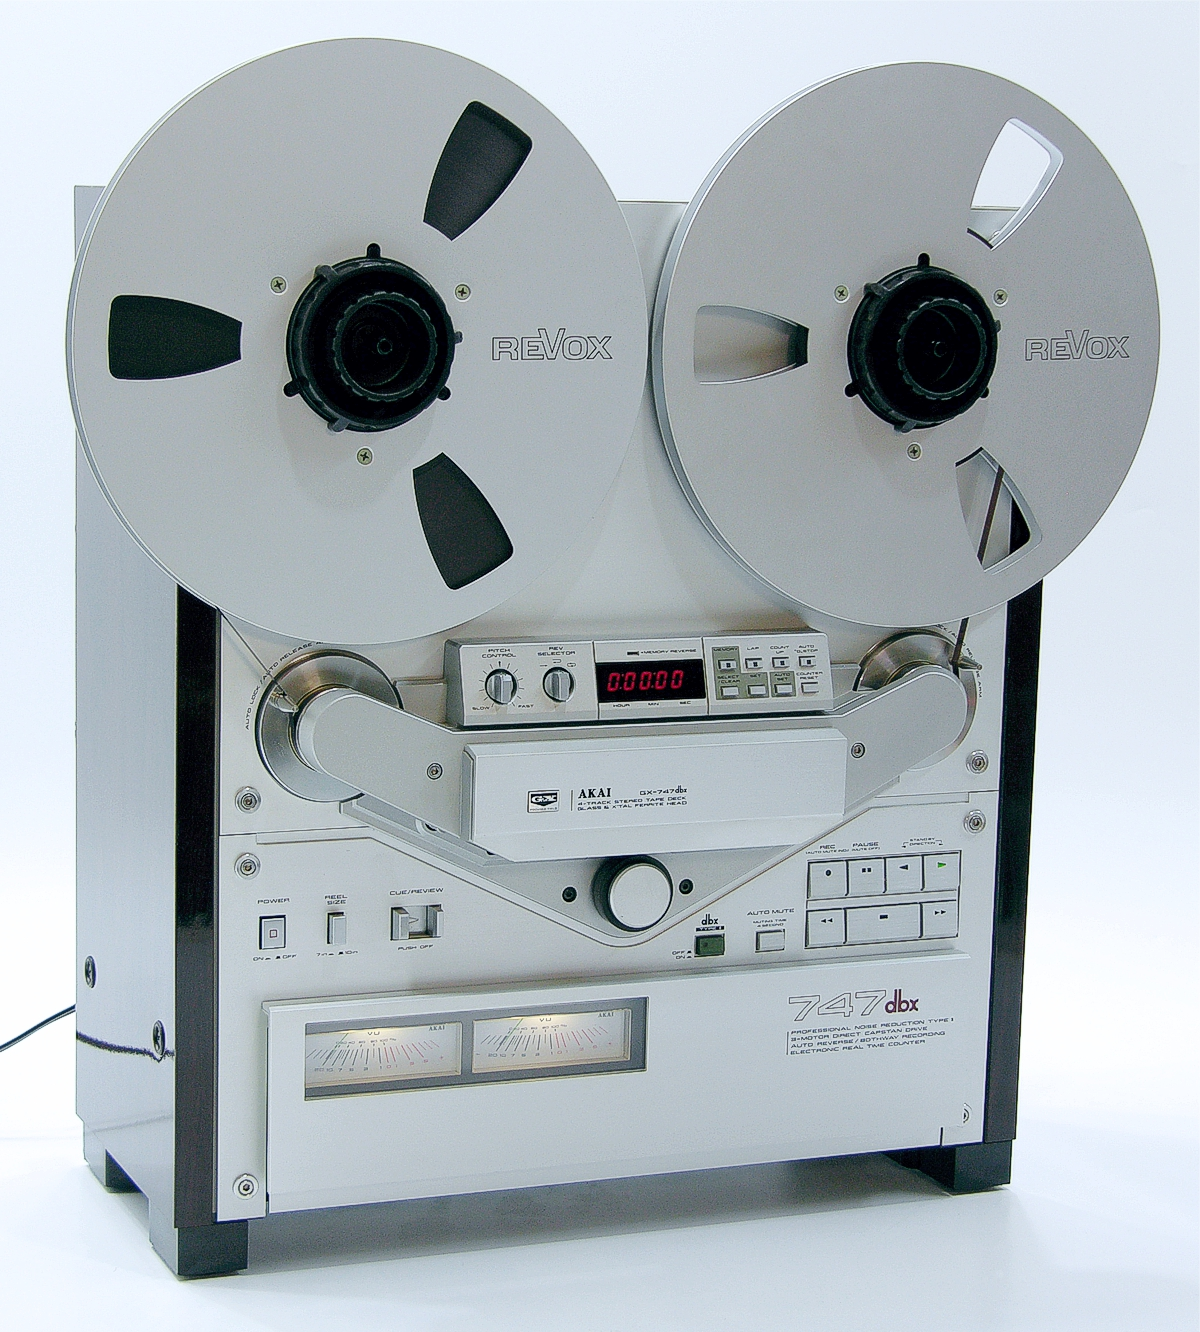 Details about Akai GX-747dbx taperecorder - serial no. 90180-15332